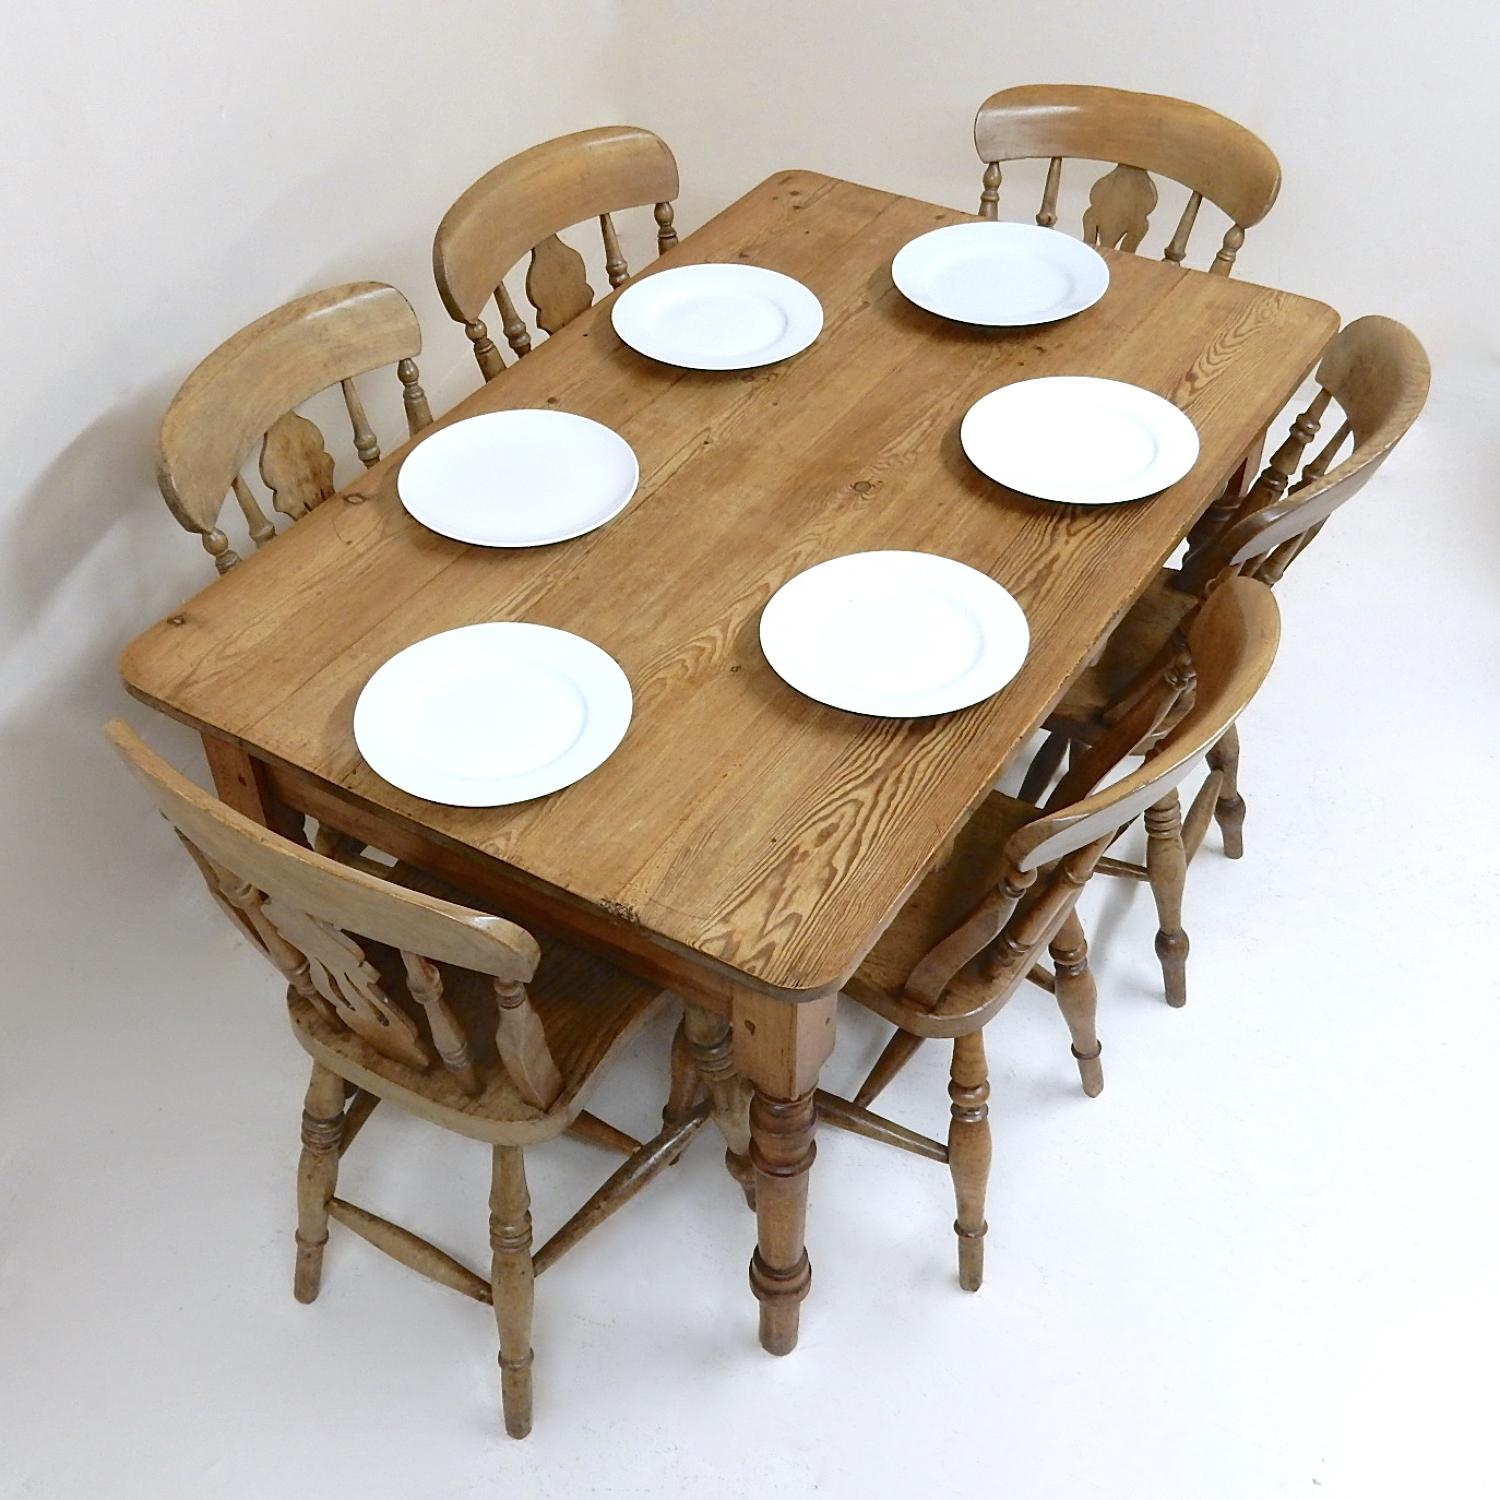 pine kitchen chairs ireland walking cane seat table in tables and